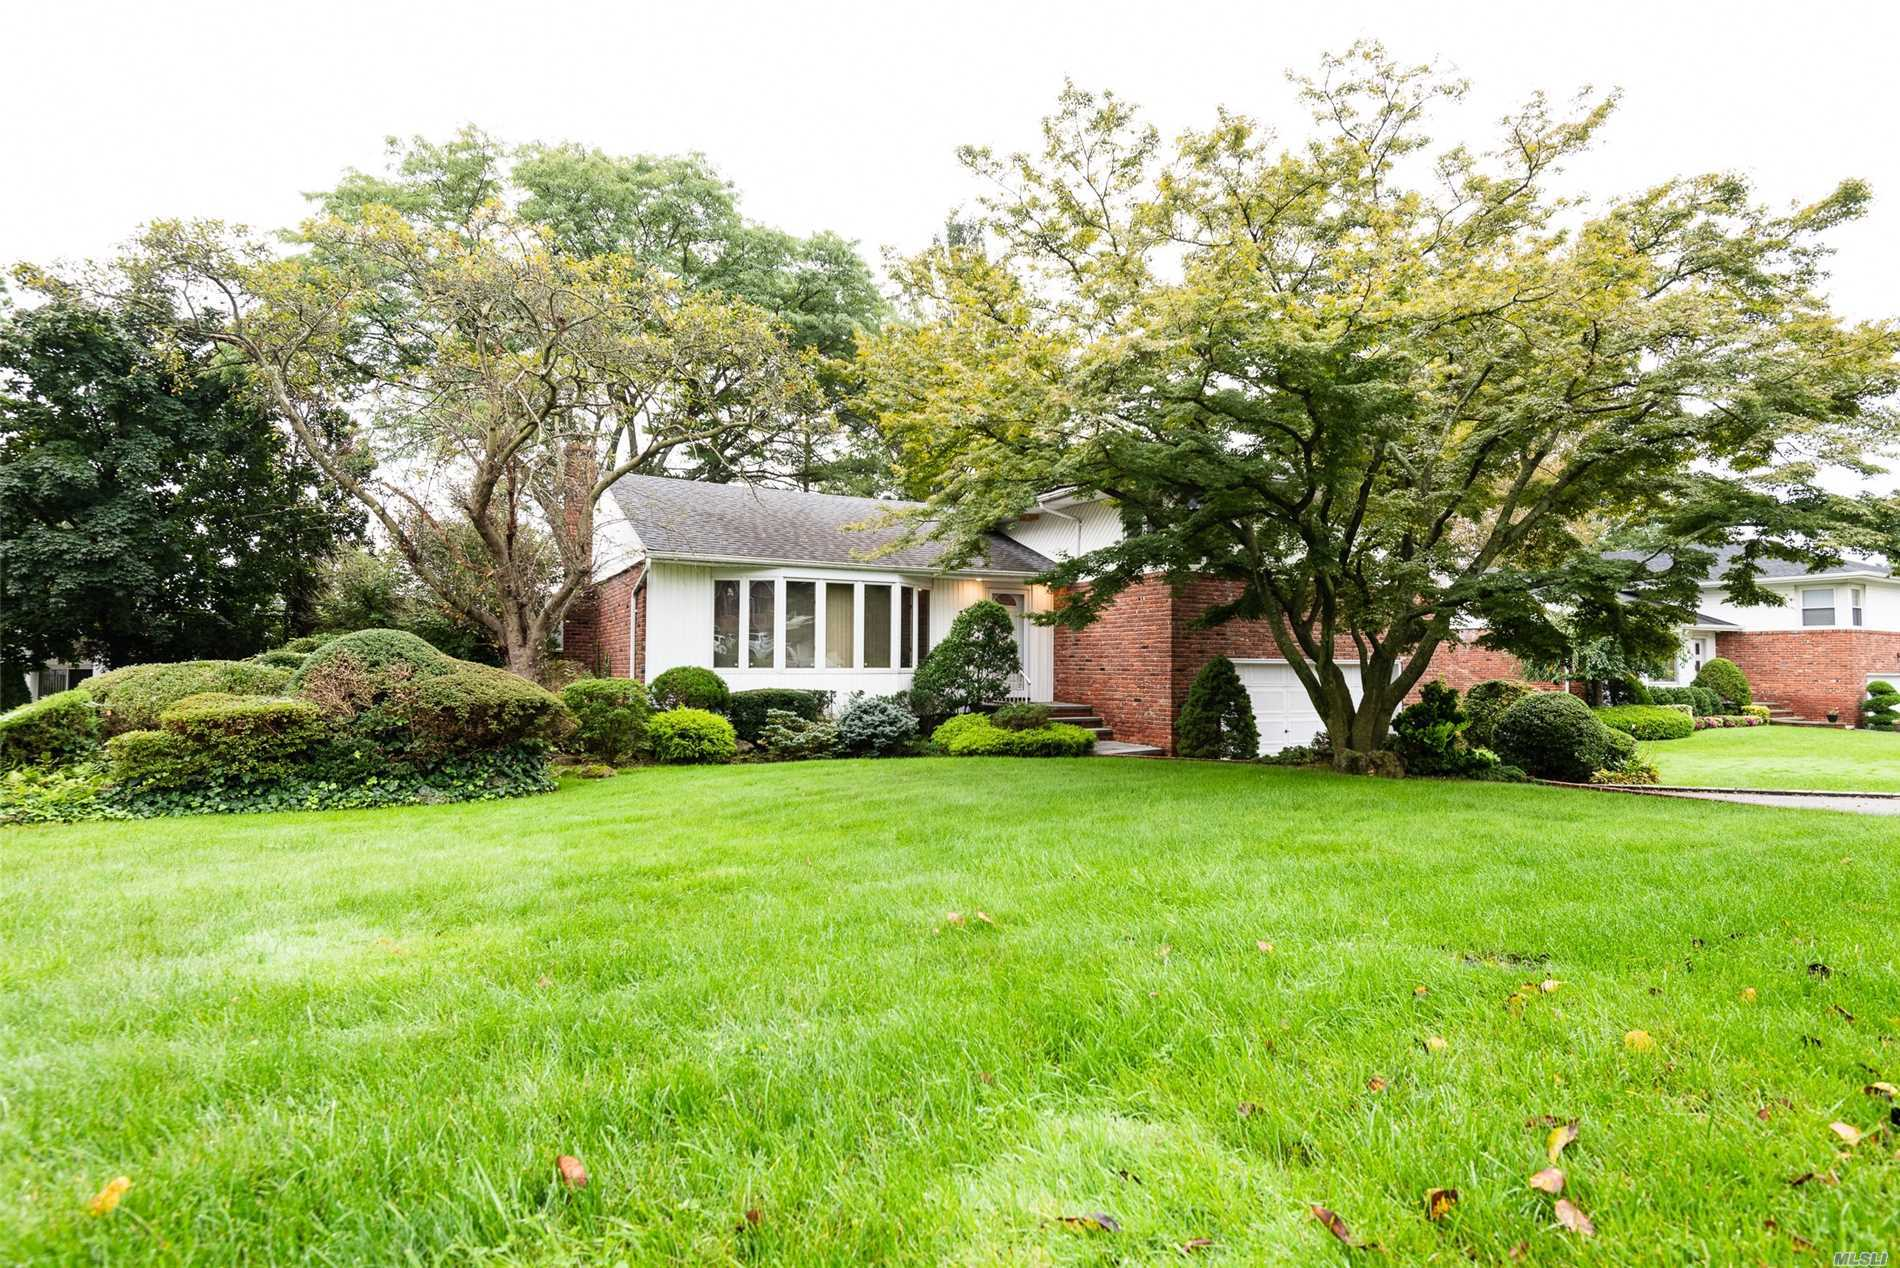 Lovely 1950S Split-Level Home In A Stellar Location Mid-Block In Manhasset Hills Within Close Proximity To Shopping, Dining, Hospitals, Country Clubs, L.I.R.R. Herricks School District #9. Features Include Hardwood Flooring, A Wood Burning Fireplace, Ample Closet And Storage Space With Custom Shelving. There Is Central Air Conditioning And 3 Zone Heating. 2 Car Attached Garage. Large Anderson Windows Which Allow For Plenty Of Natural Light. Den Features Sliding Glass Doors To Brick Patio.